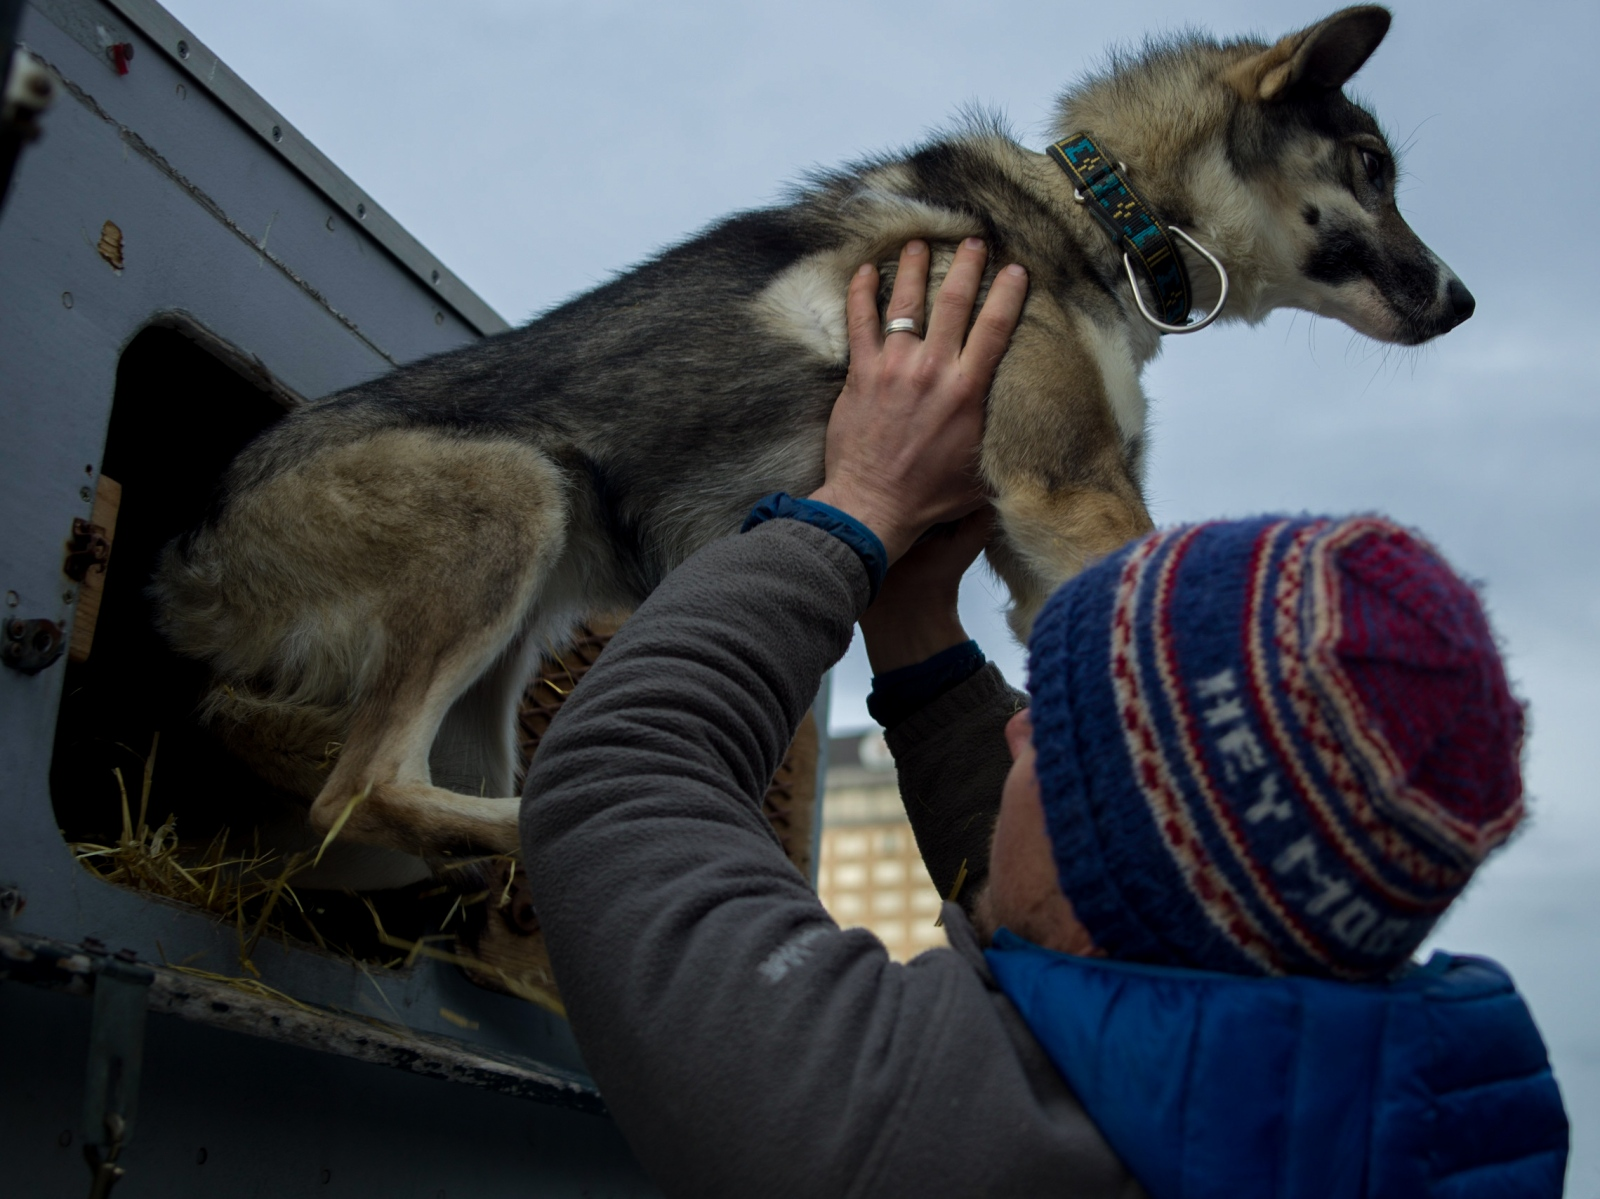 Andrew Pace, husband to Iditarod musher Kristin Pace, pulls a dog from their trialer at the ceremonial Iditarod start in Anchorage on March 5, 2016. Together Andrew and Kristin run Hey Moose! Kennel in Healy, Alaska. Andrew also mushes dogs and was a 2016 finisher in the Yukon Quest.